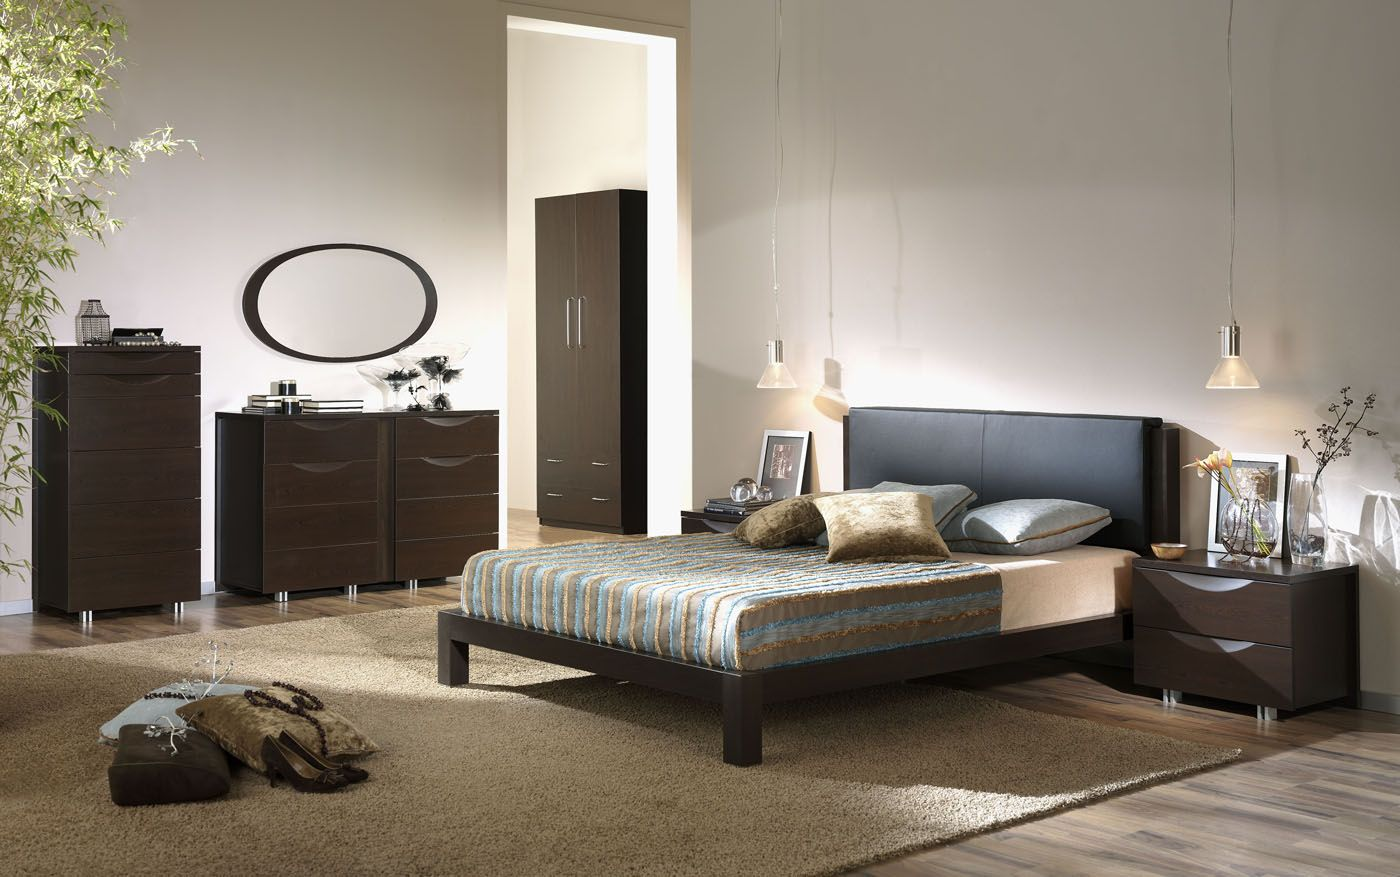 Bedroom color schemes brown - Nice Bedroom Color Schemes 198 Stylendesigns Com